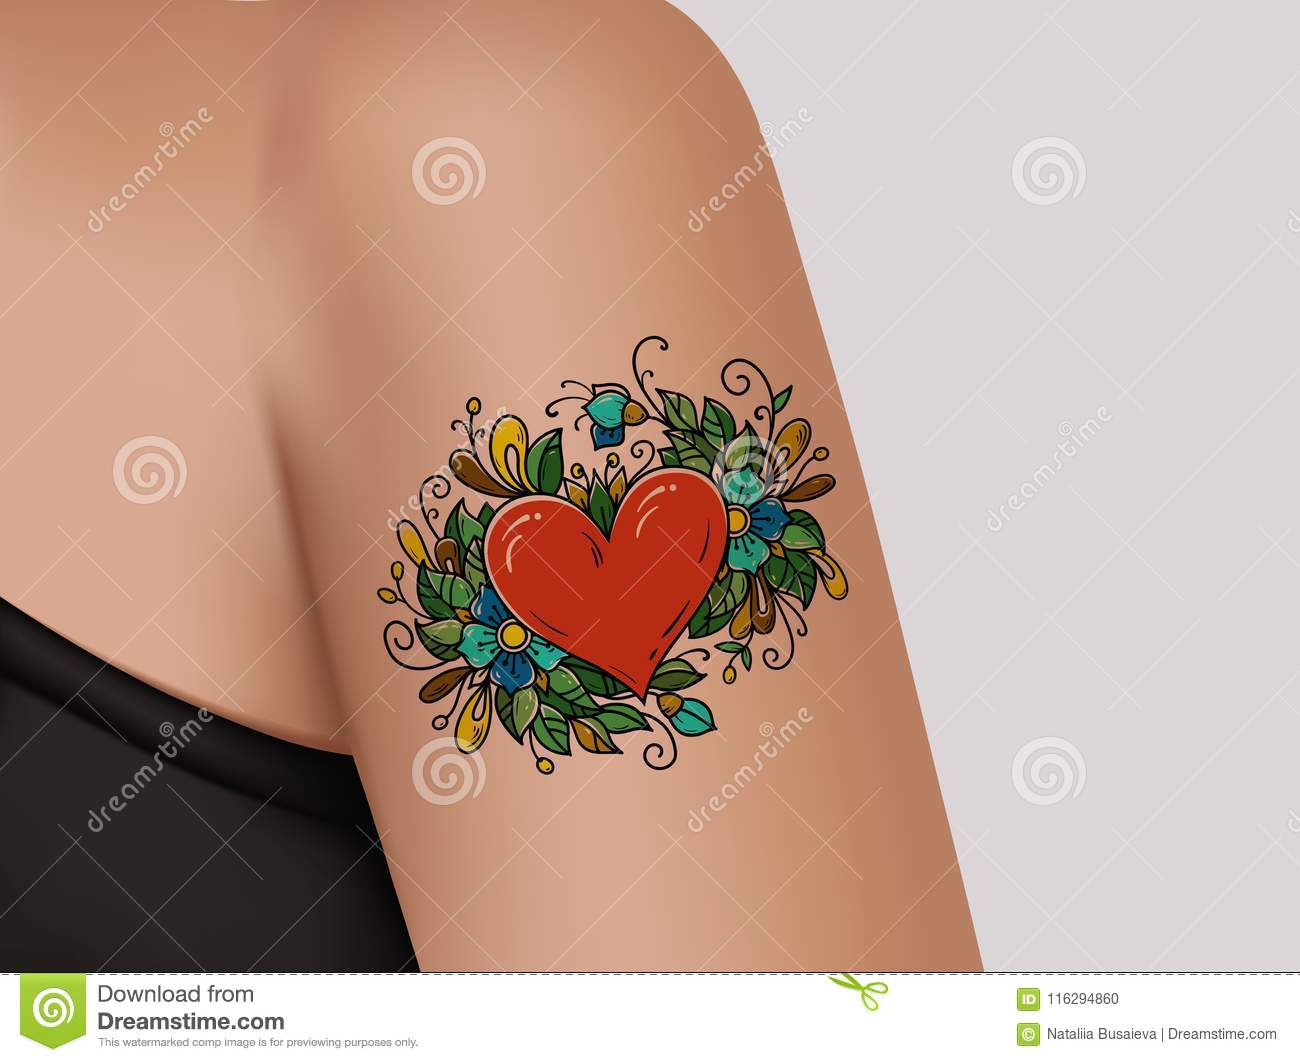 tattoo on shoulder heart decorated with flowers stock illustration